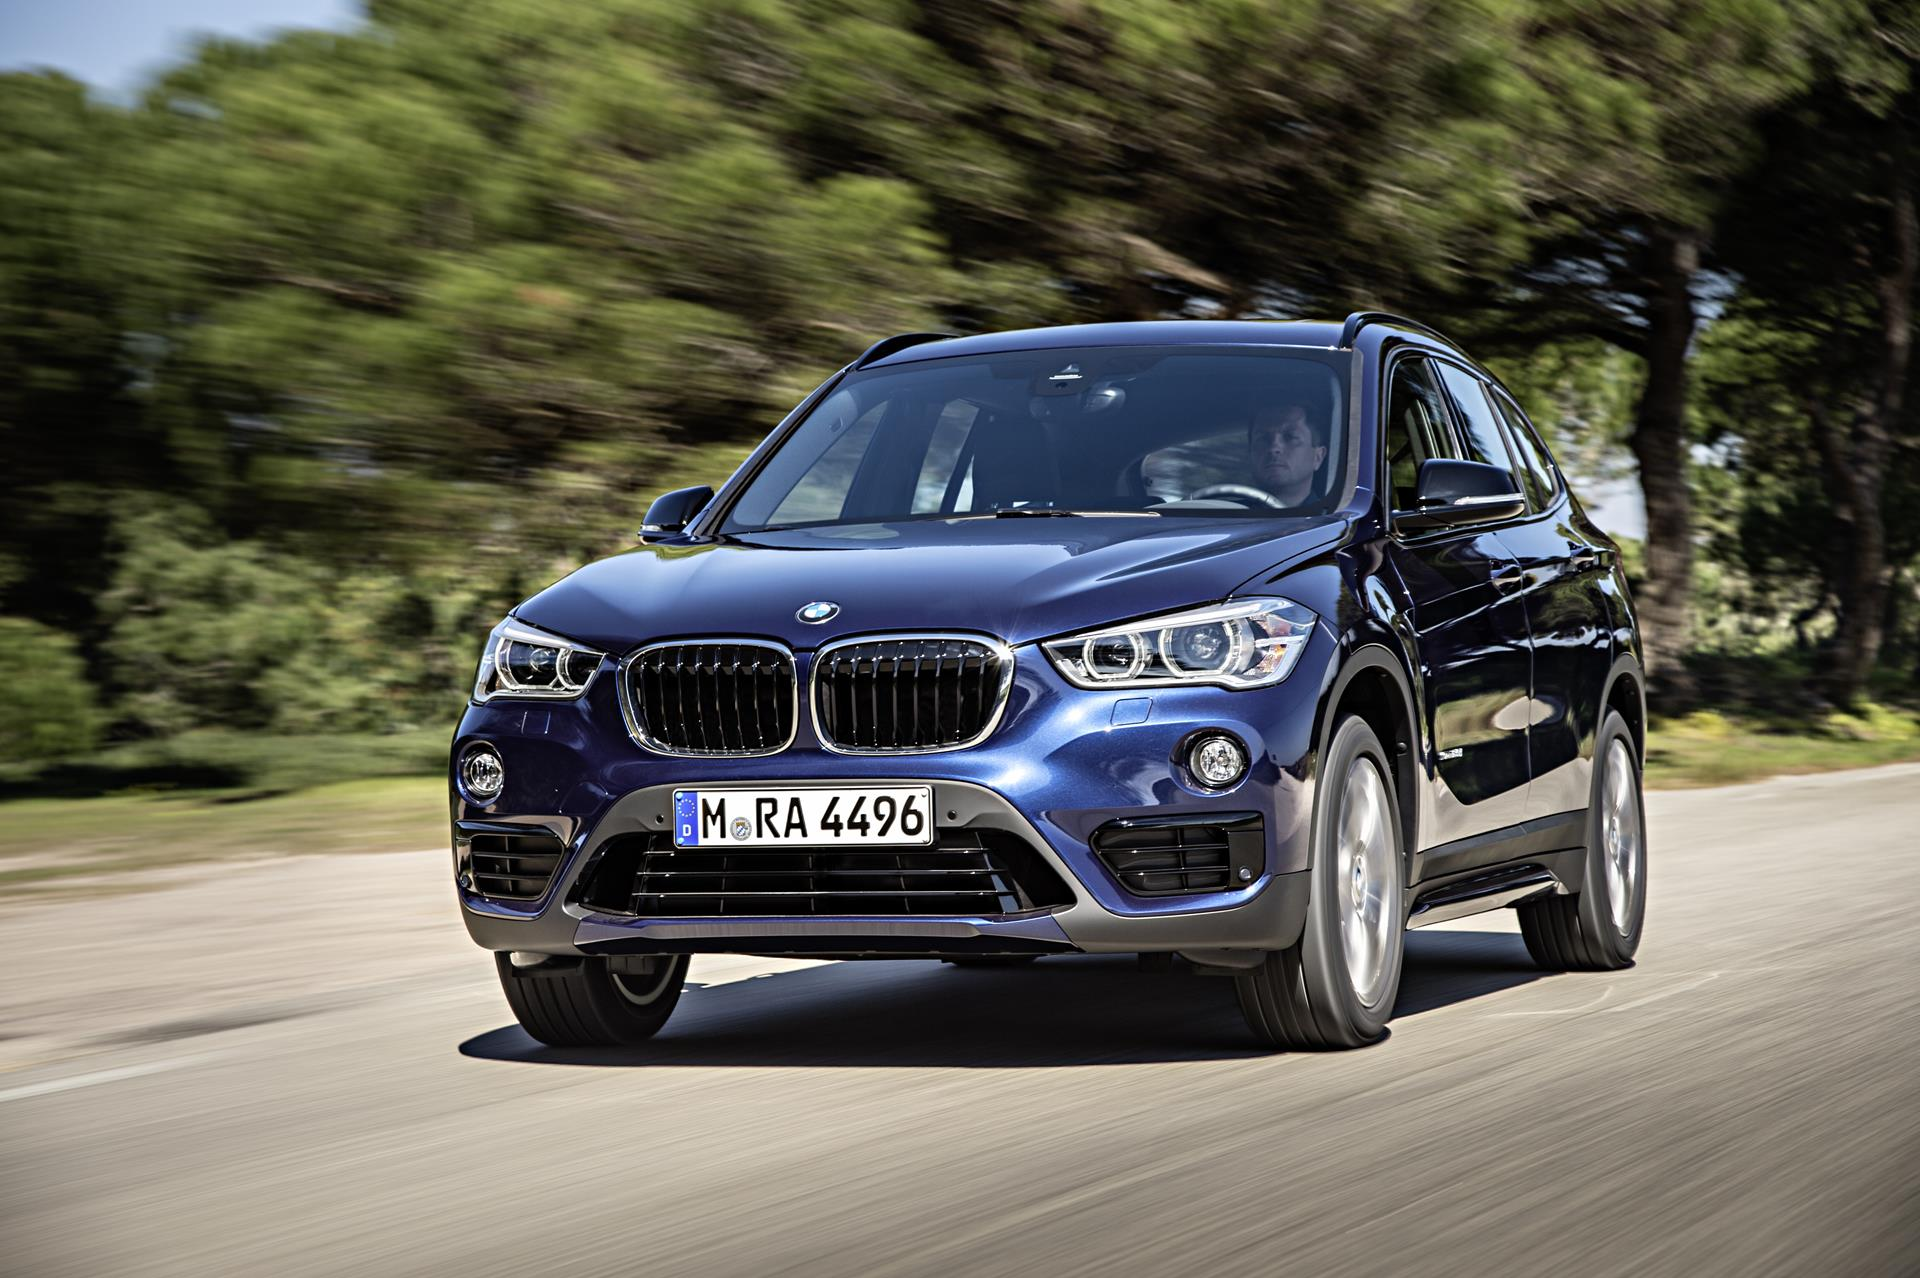 2016 bmw x1 technical specifications and data engine dimensions and mechanical details. Black Bedroom Furniture Sets. Home Design Ideas